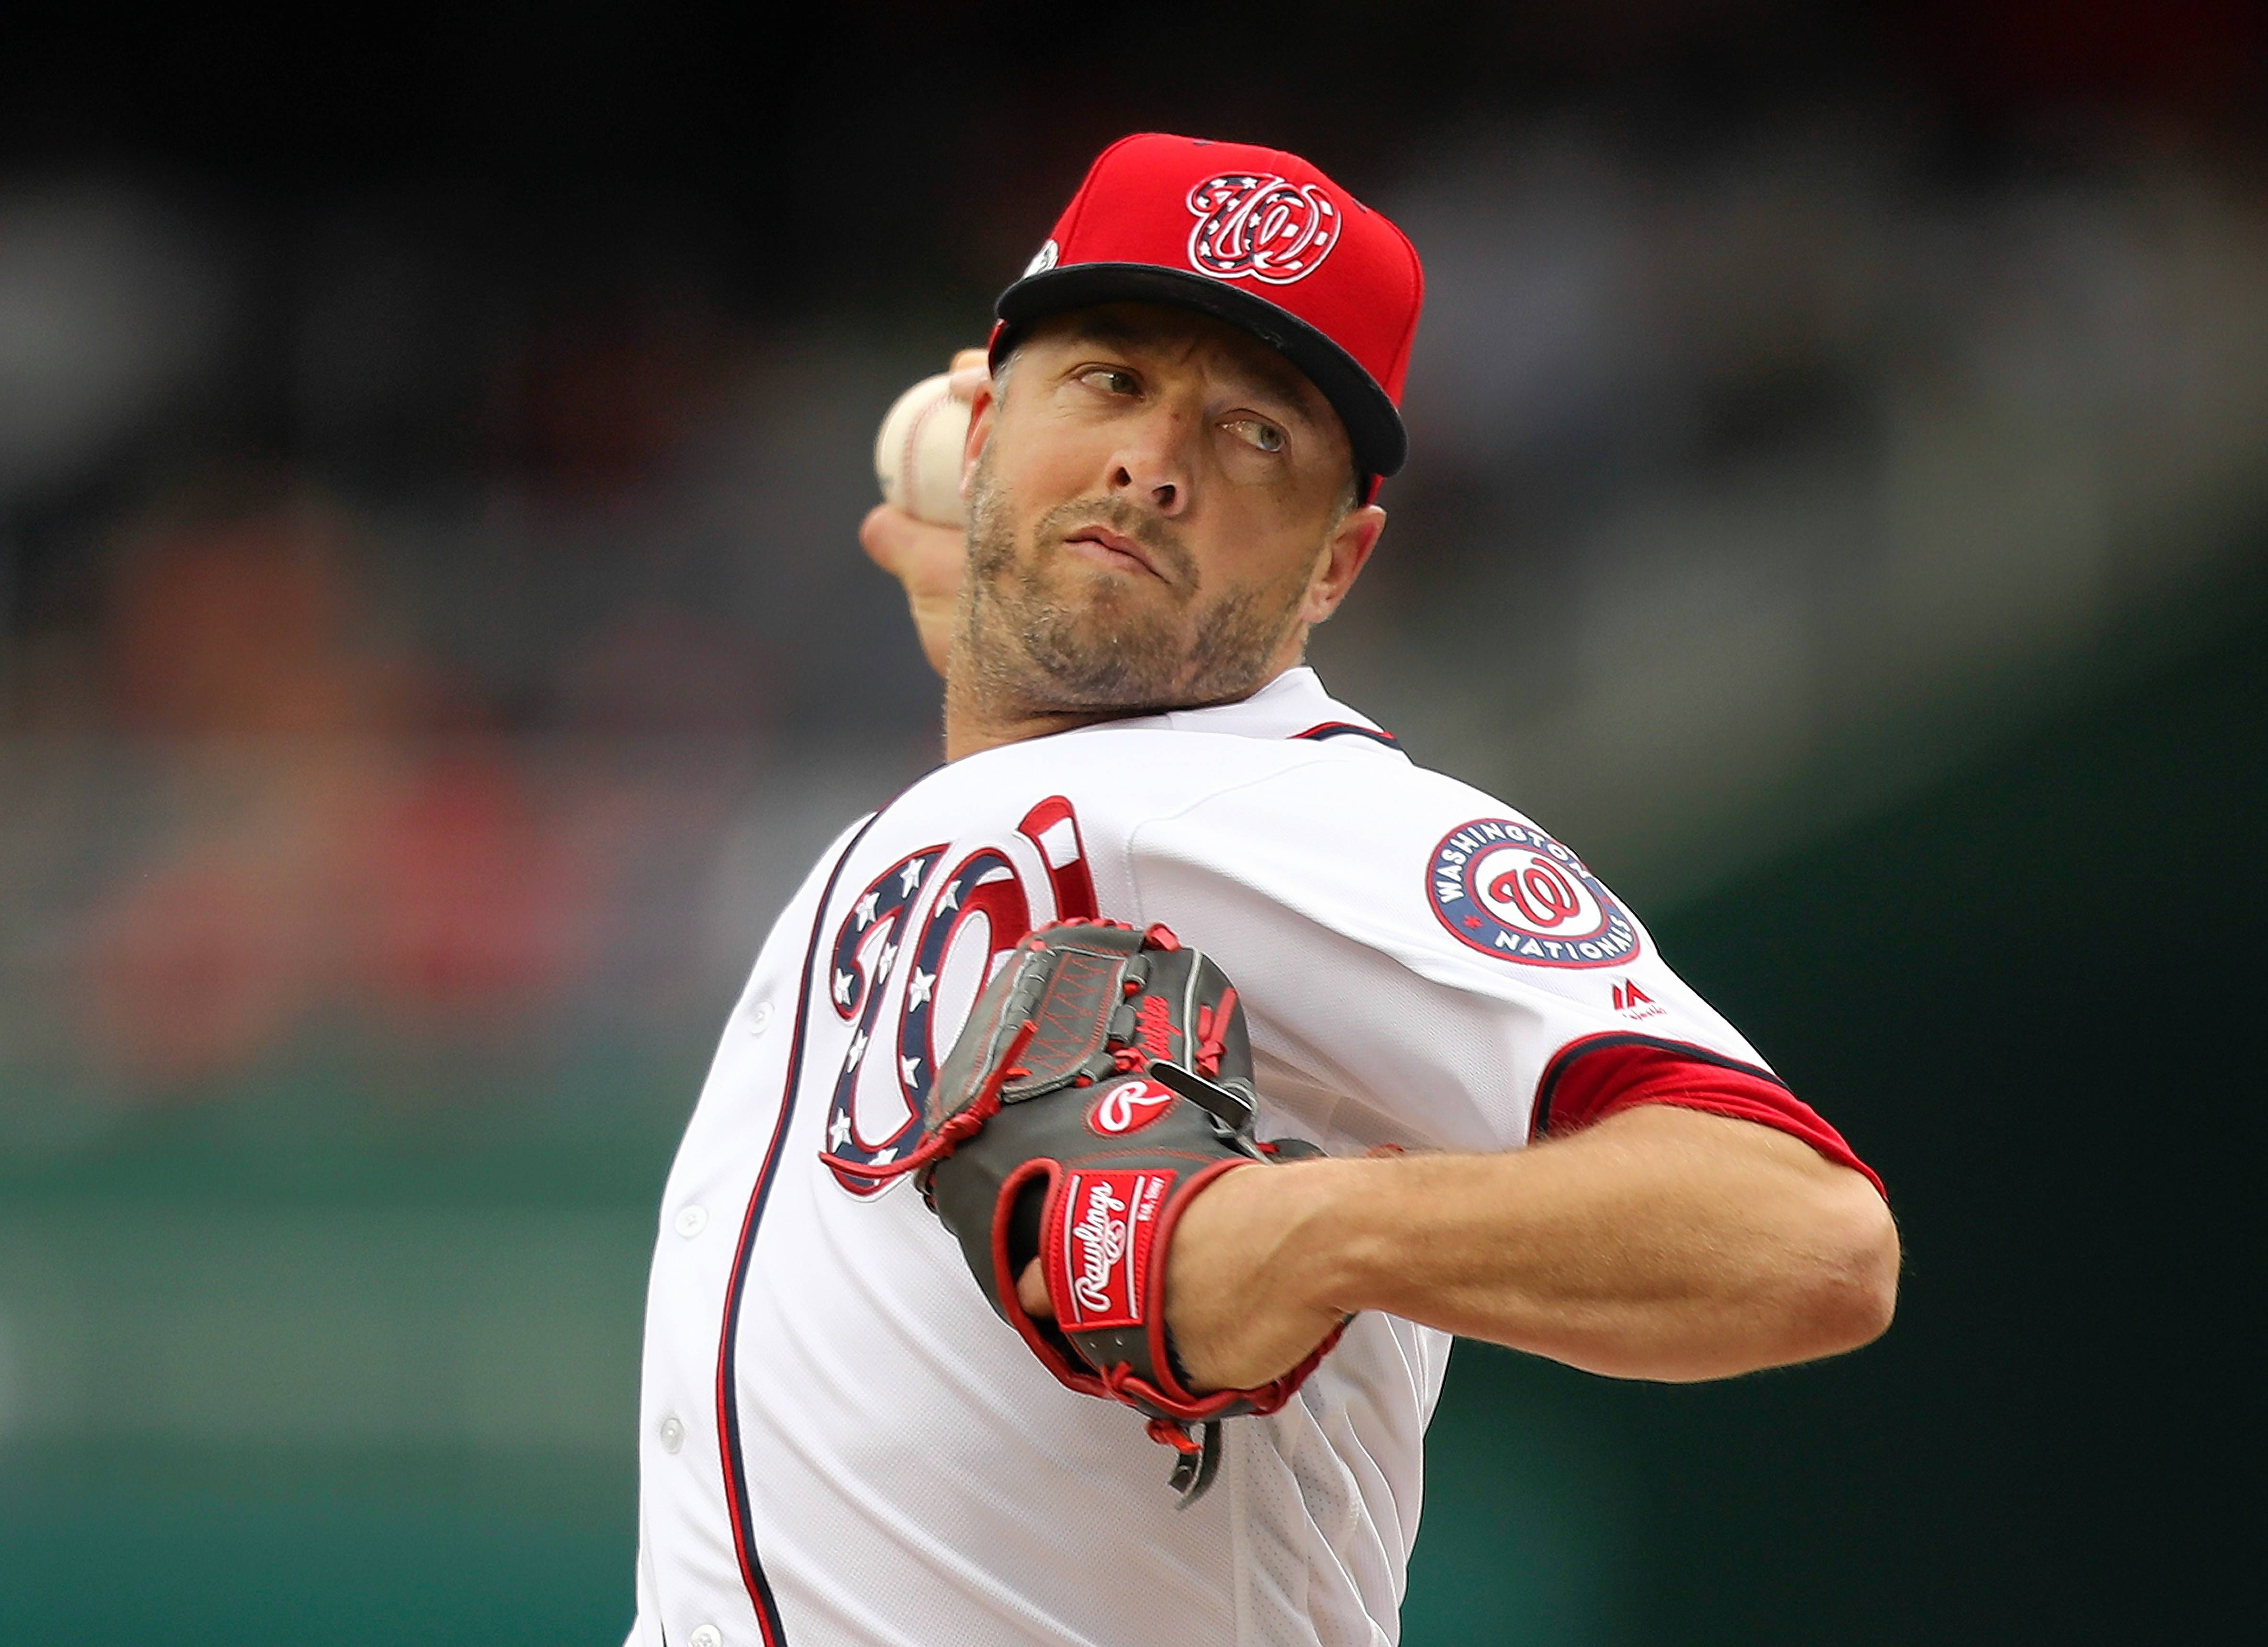 Chicago Cubs trade for Nationals reliever Kintzler